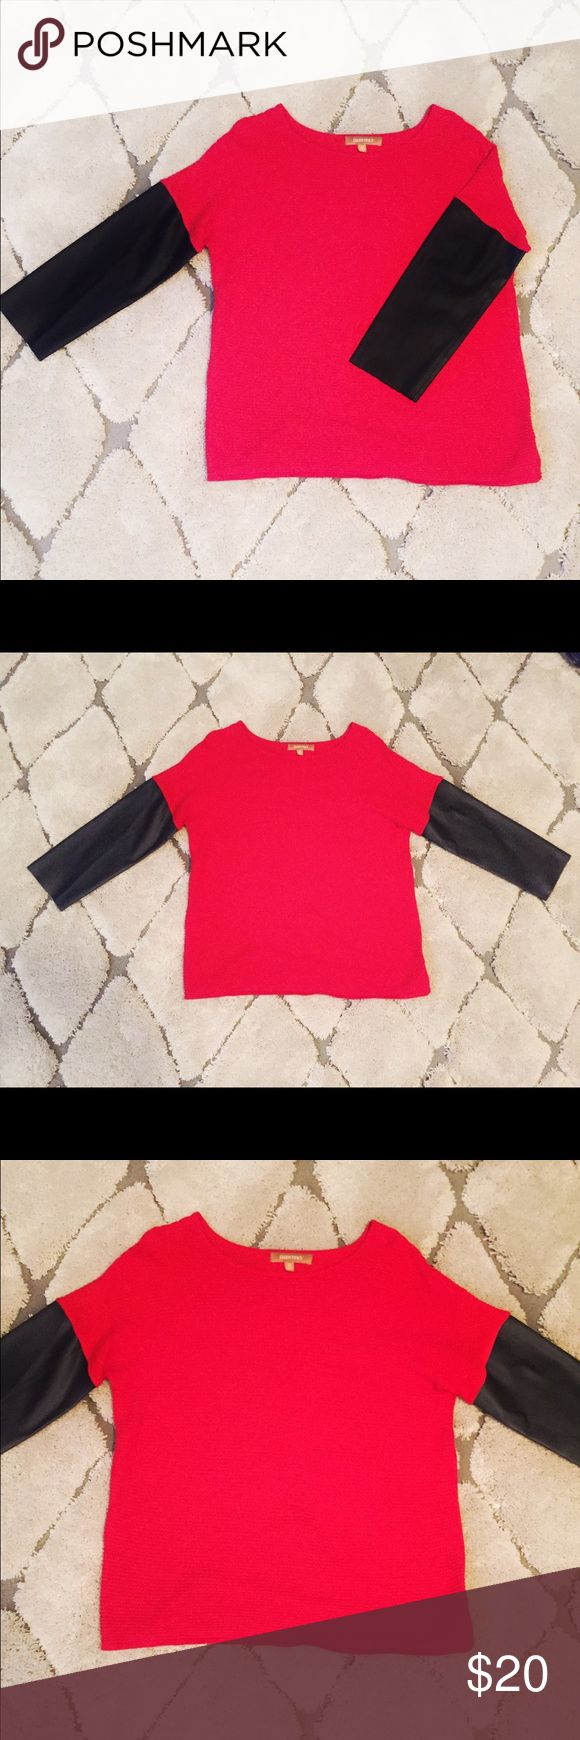 Ellen Tracy sweater with faux leather sleeves Red Ellen Tracy sweater with faux leather sleeves. Size medium. Excellent used condition. I bought this from another posher, even though it was a little big, because I loved it so much! However, the size medium is just a bit too large on me and I can't make it work. I'm reselling it for exactly what I paid. Ellen Tracy Sweaters